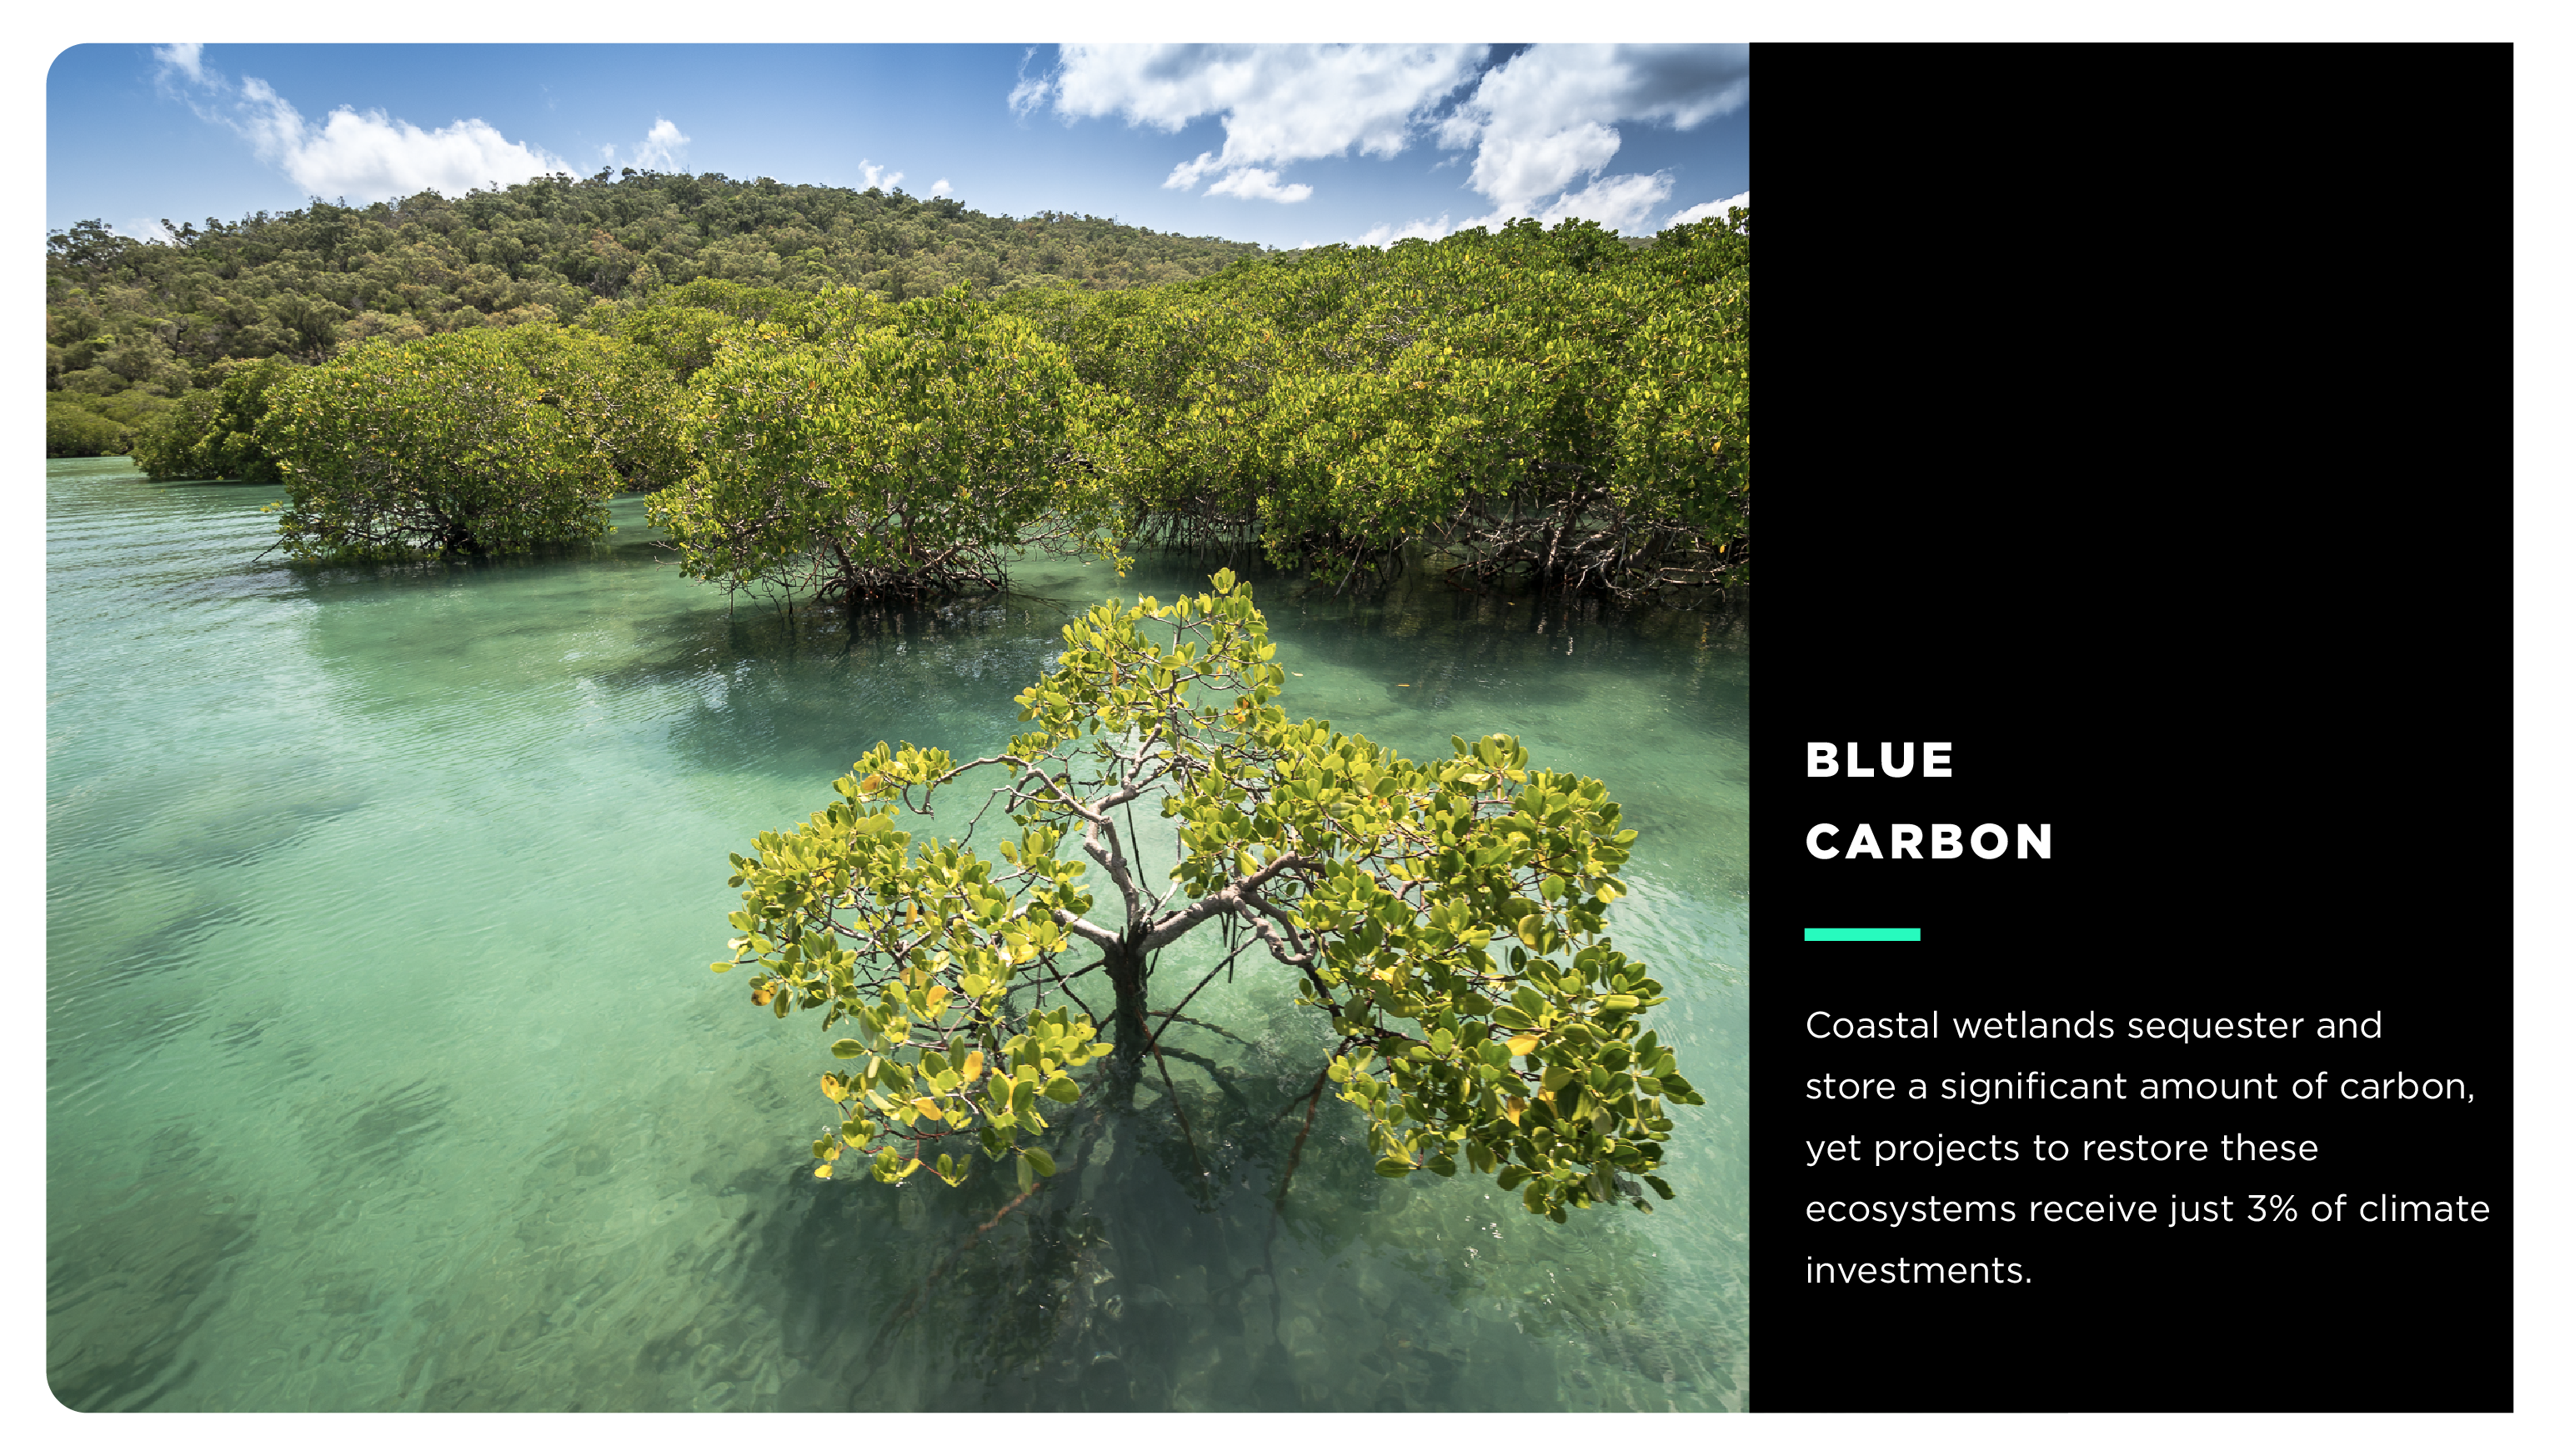 Coastal wetlands sequester and store a significant amount of carbon, yet projects to restore these ecosystems receive just 3% of climate investments.